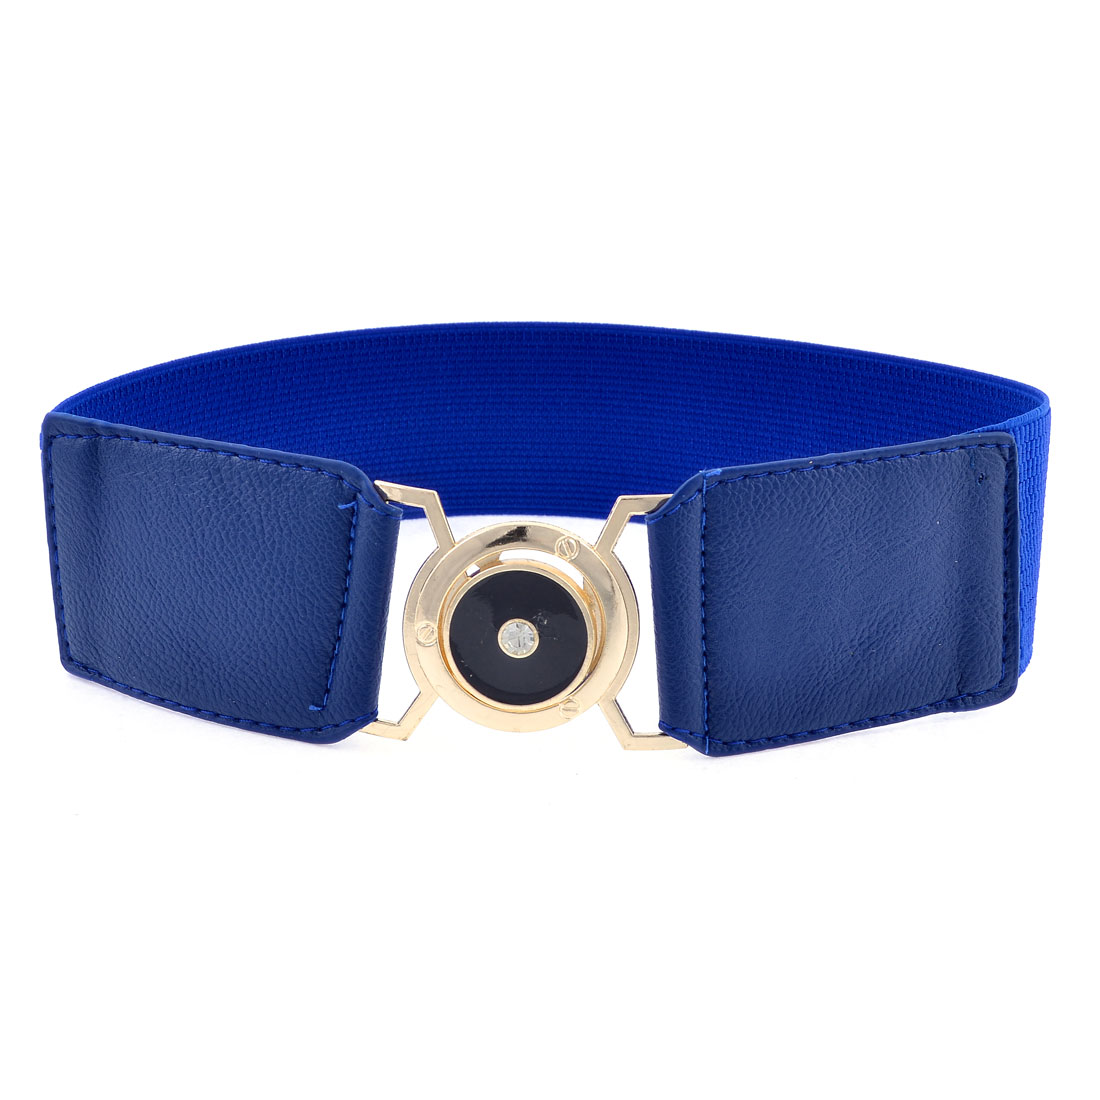 Faceted Plastic Crystal Decor Interlock Buckle Blue Textured Stretch Waist Belt